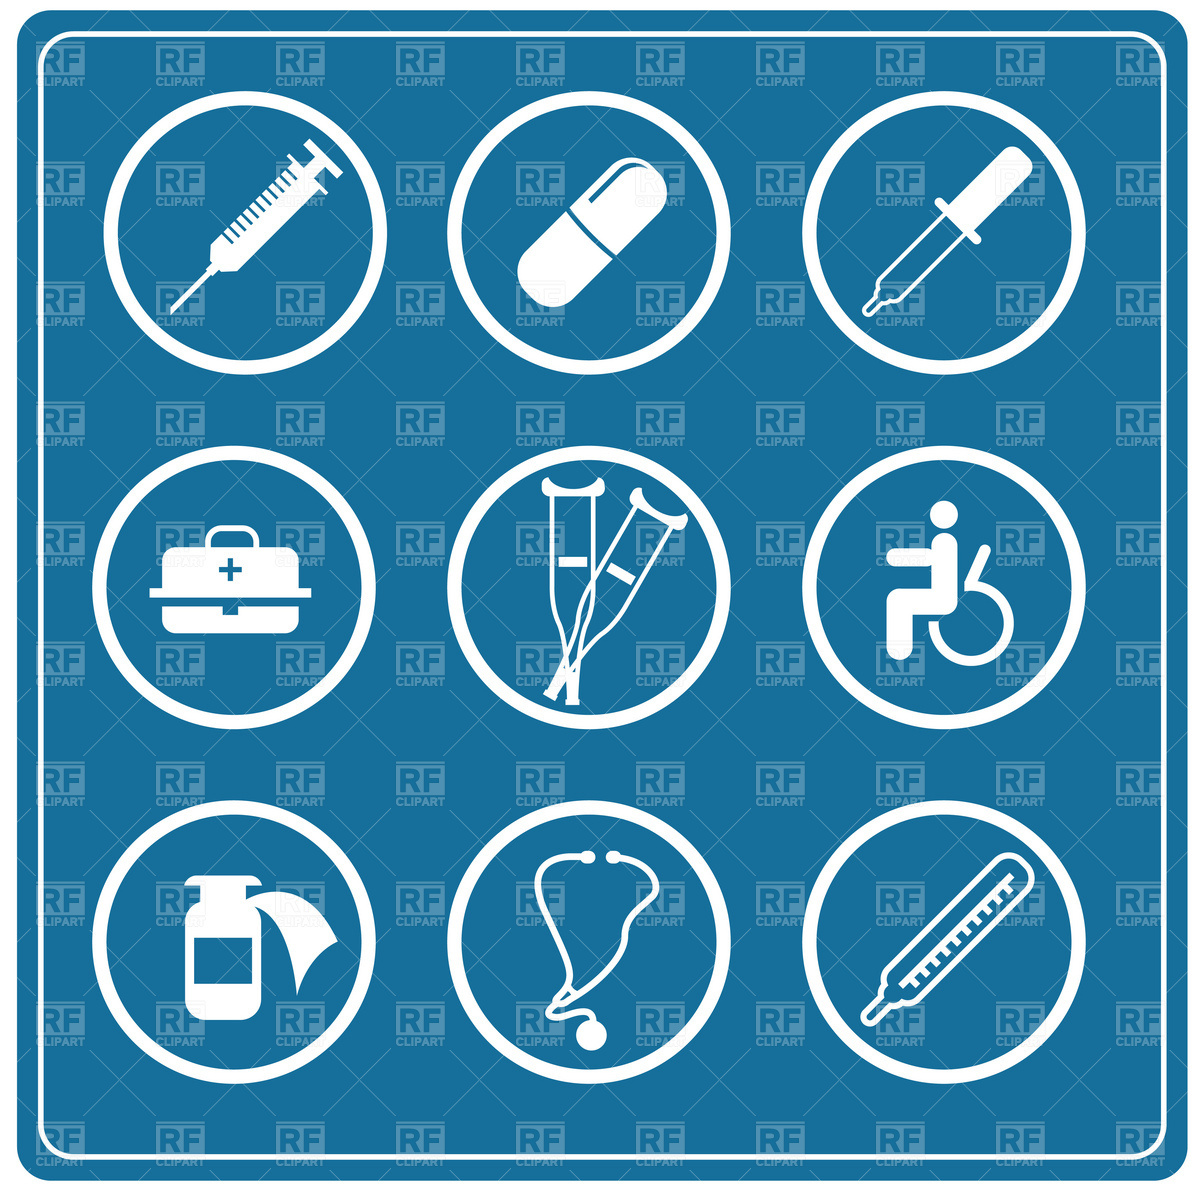 Medicine icon set Vector Image of Healthcare, Medical © good #1883.